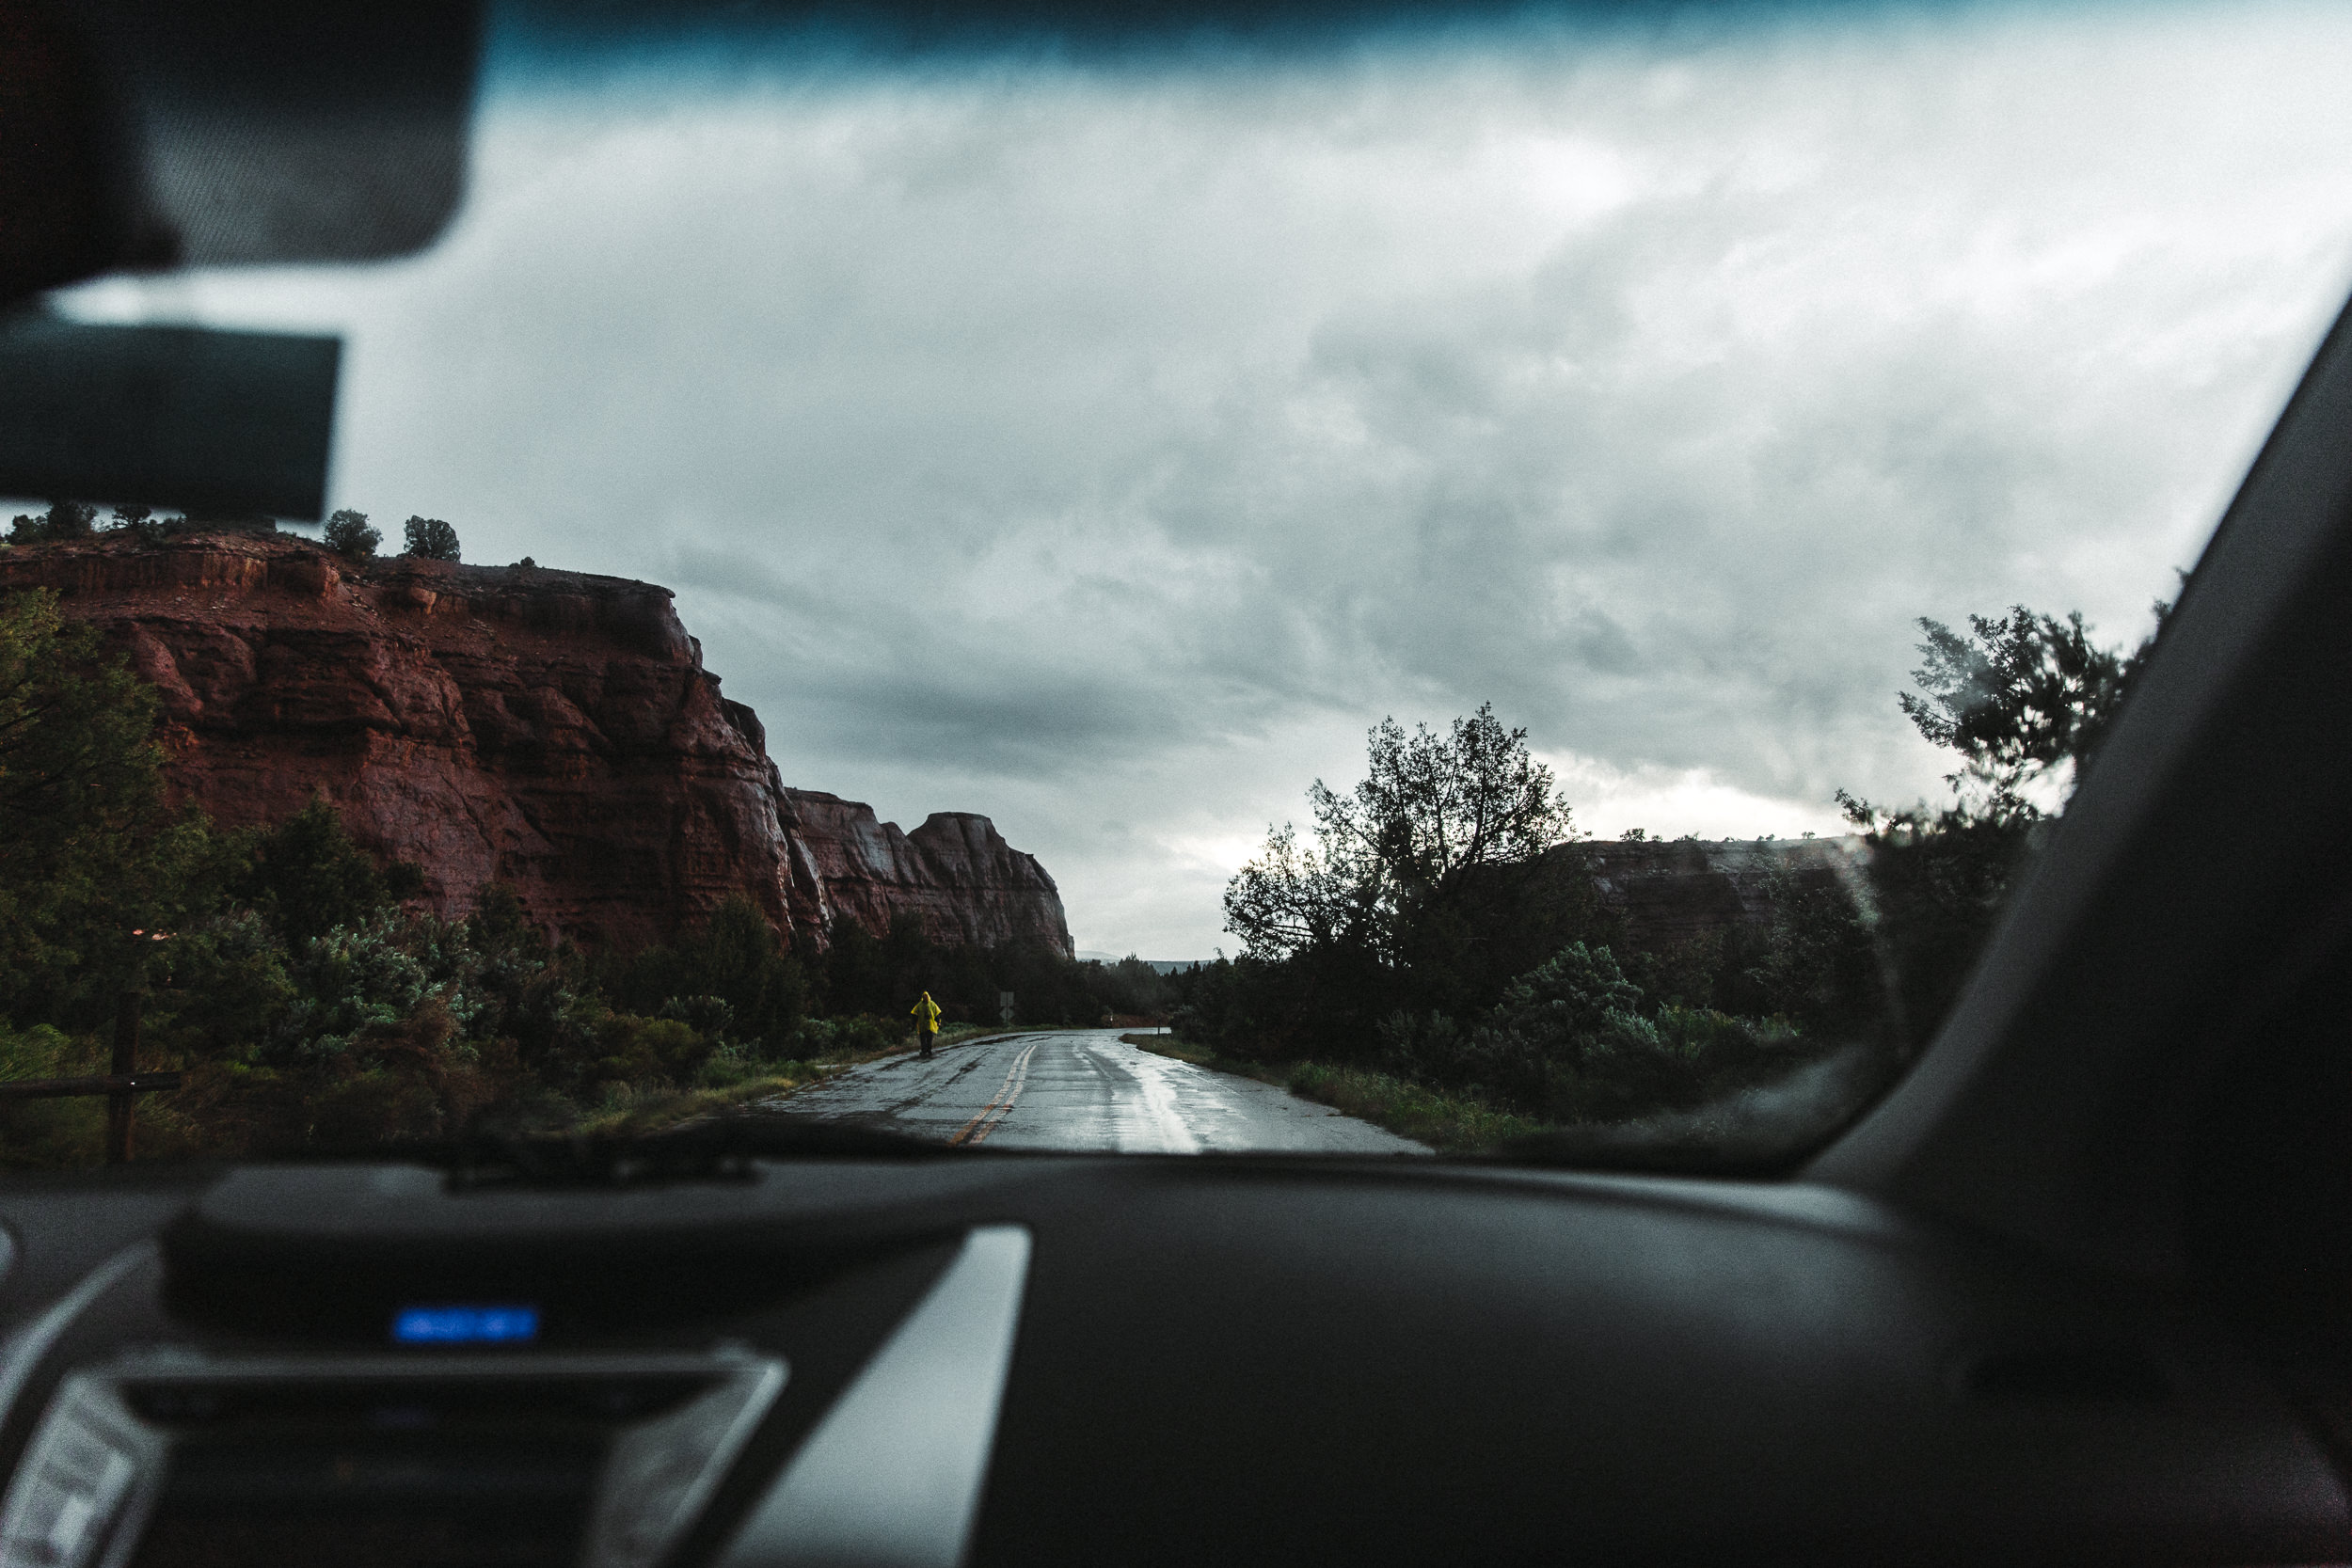 Things to do in the rain at Kodachrome Basin State Park